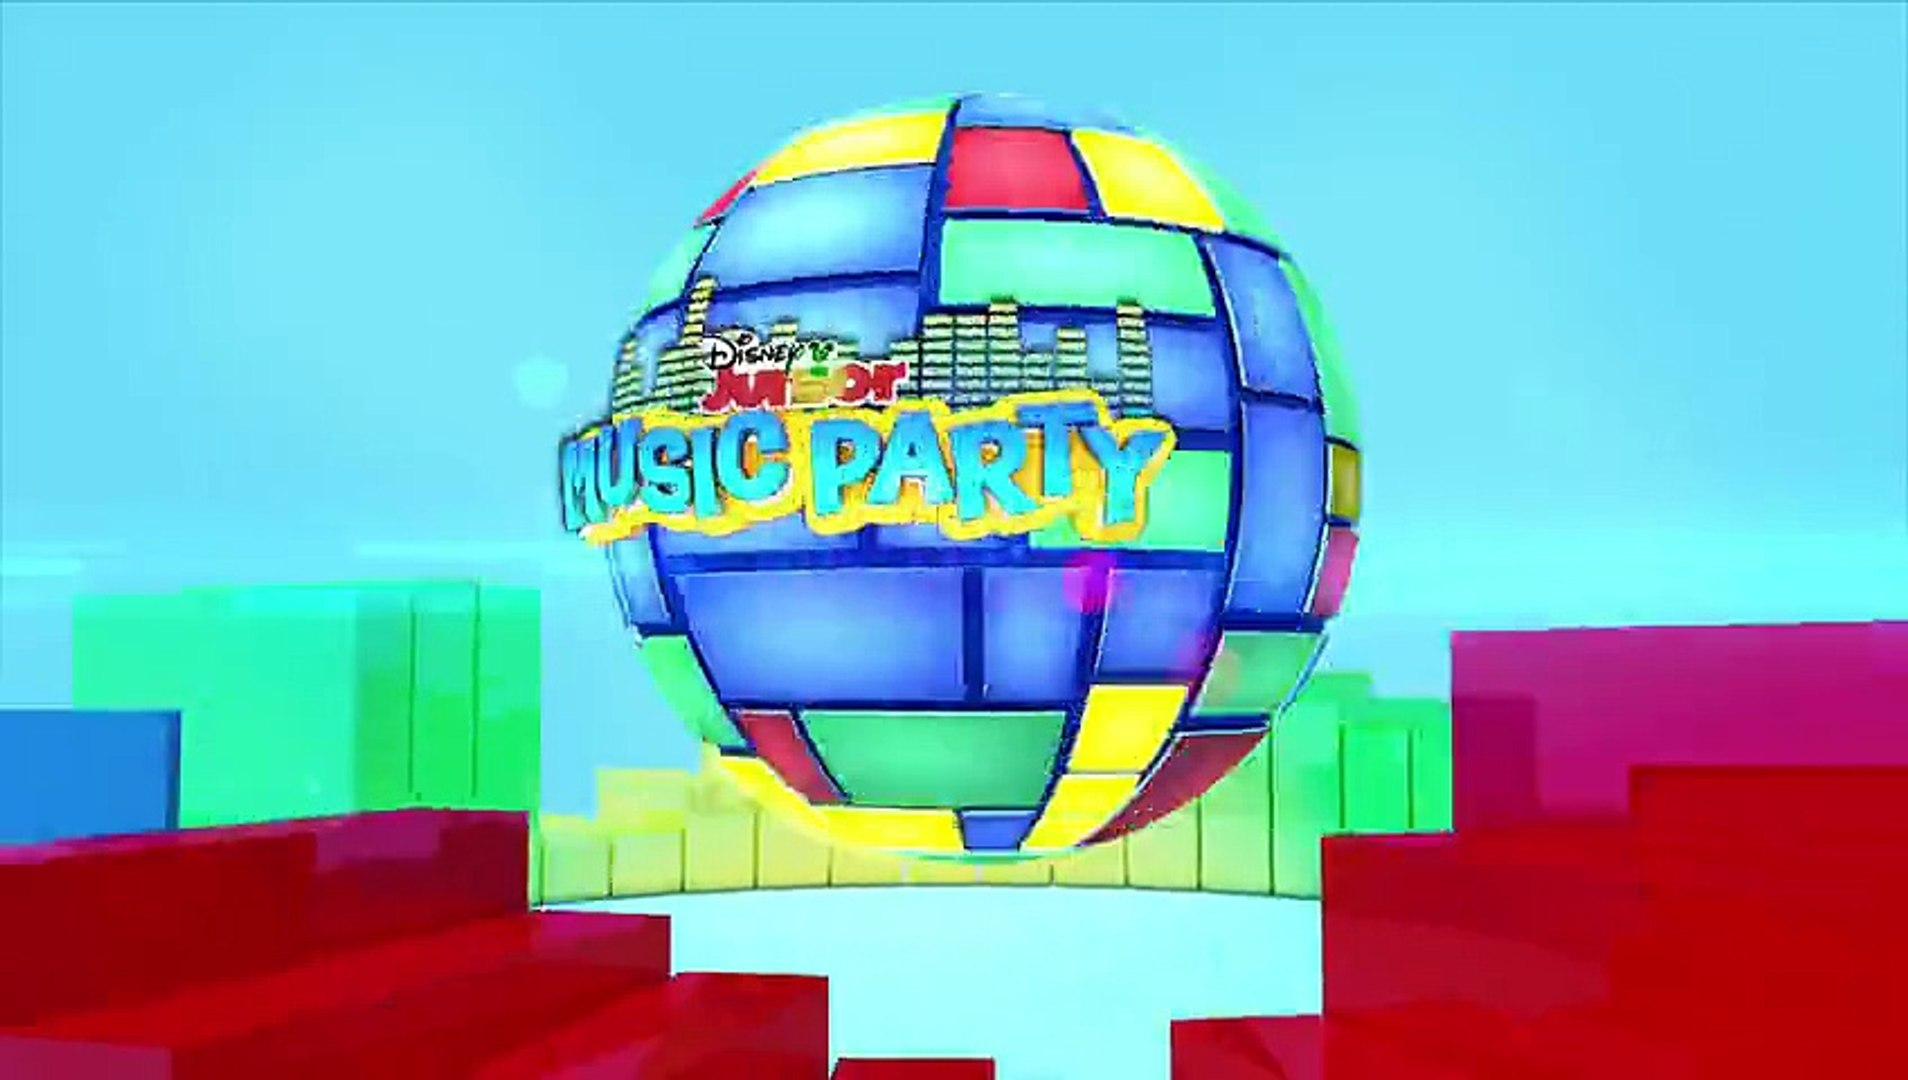 Disney Junior España - Disney Junior Music Party: El centro de atención